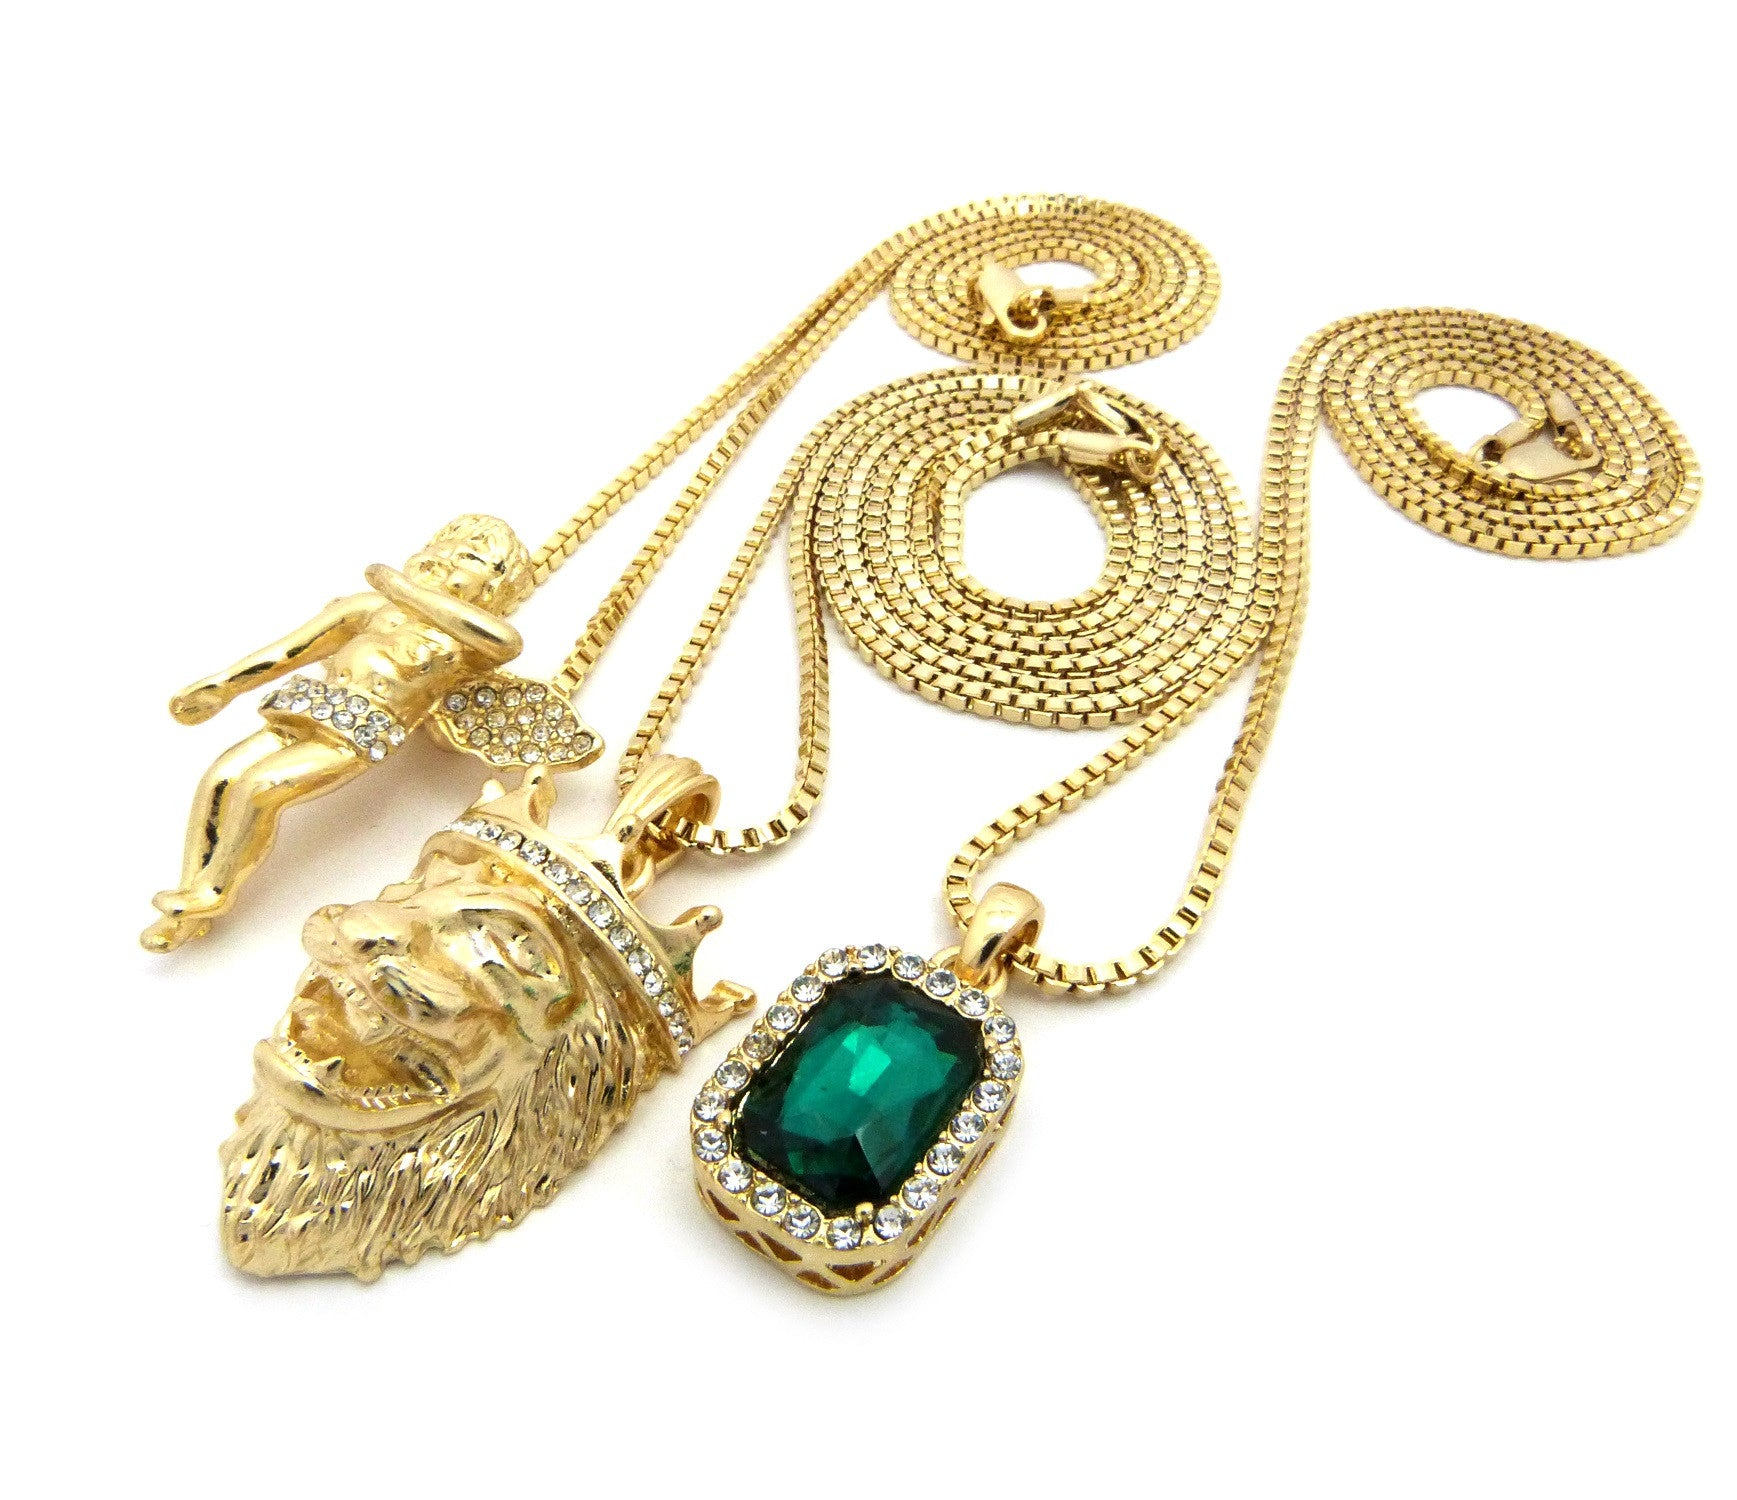 3 Chain Set: Cherub Angel with King Leo Lion and Emerald Green Gemstone